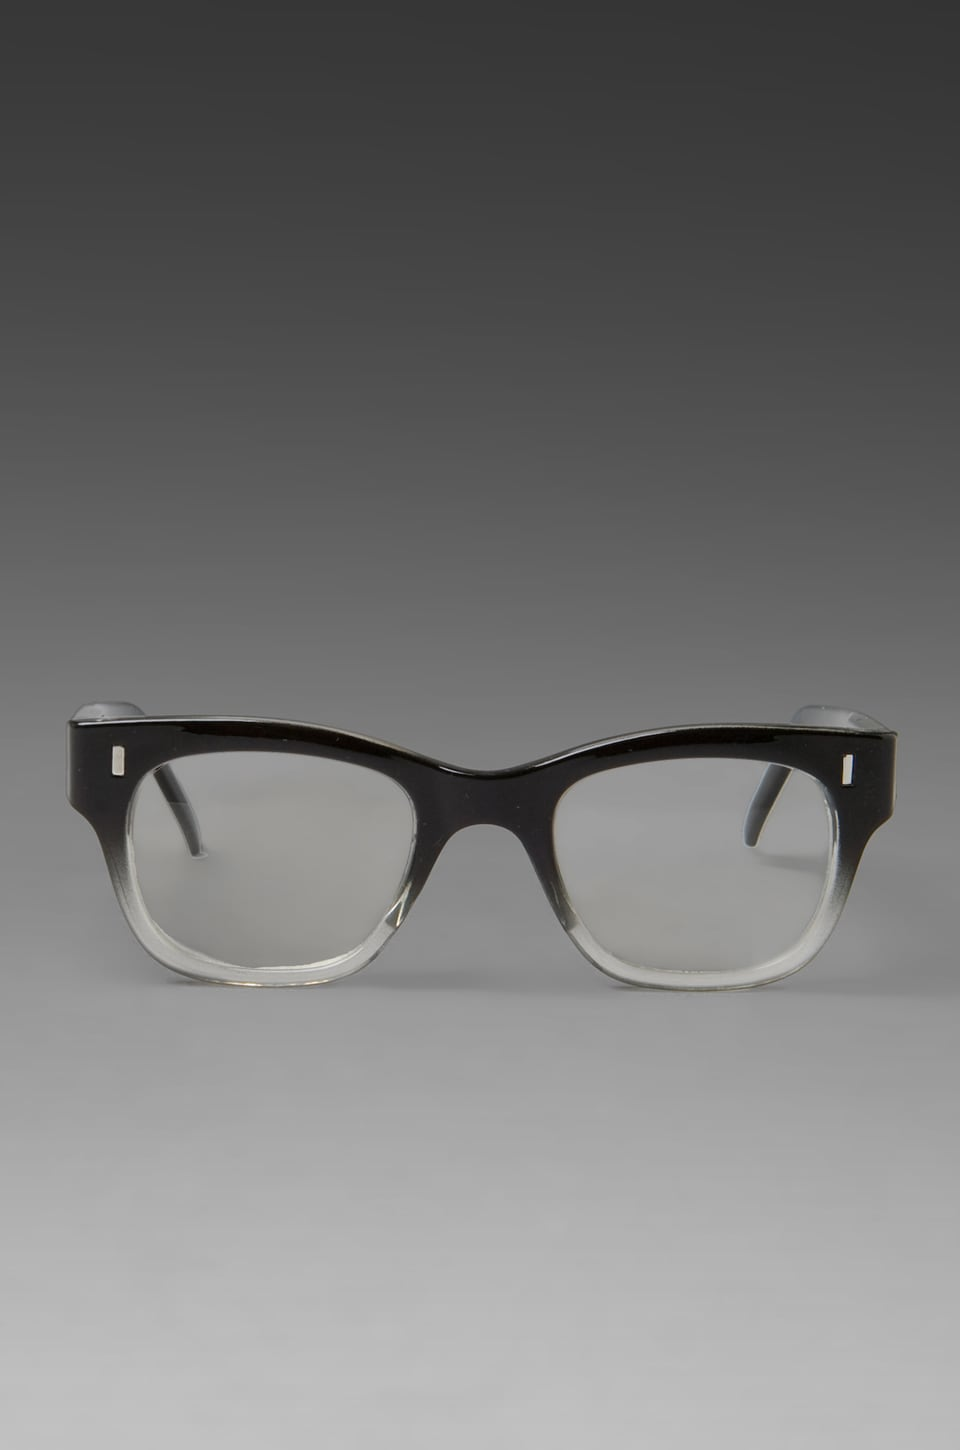 Spitfire MX1 in Black/Clear Frame/Clear Lens